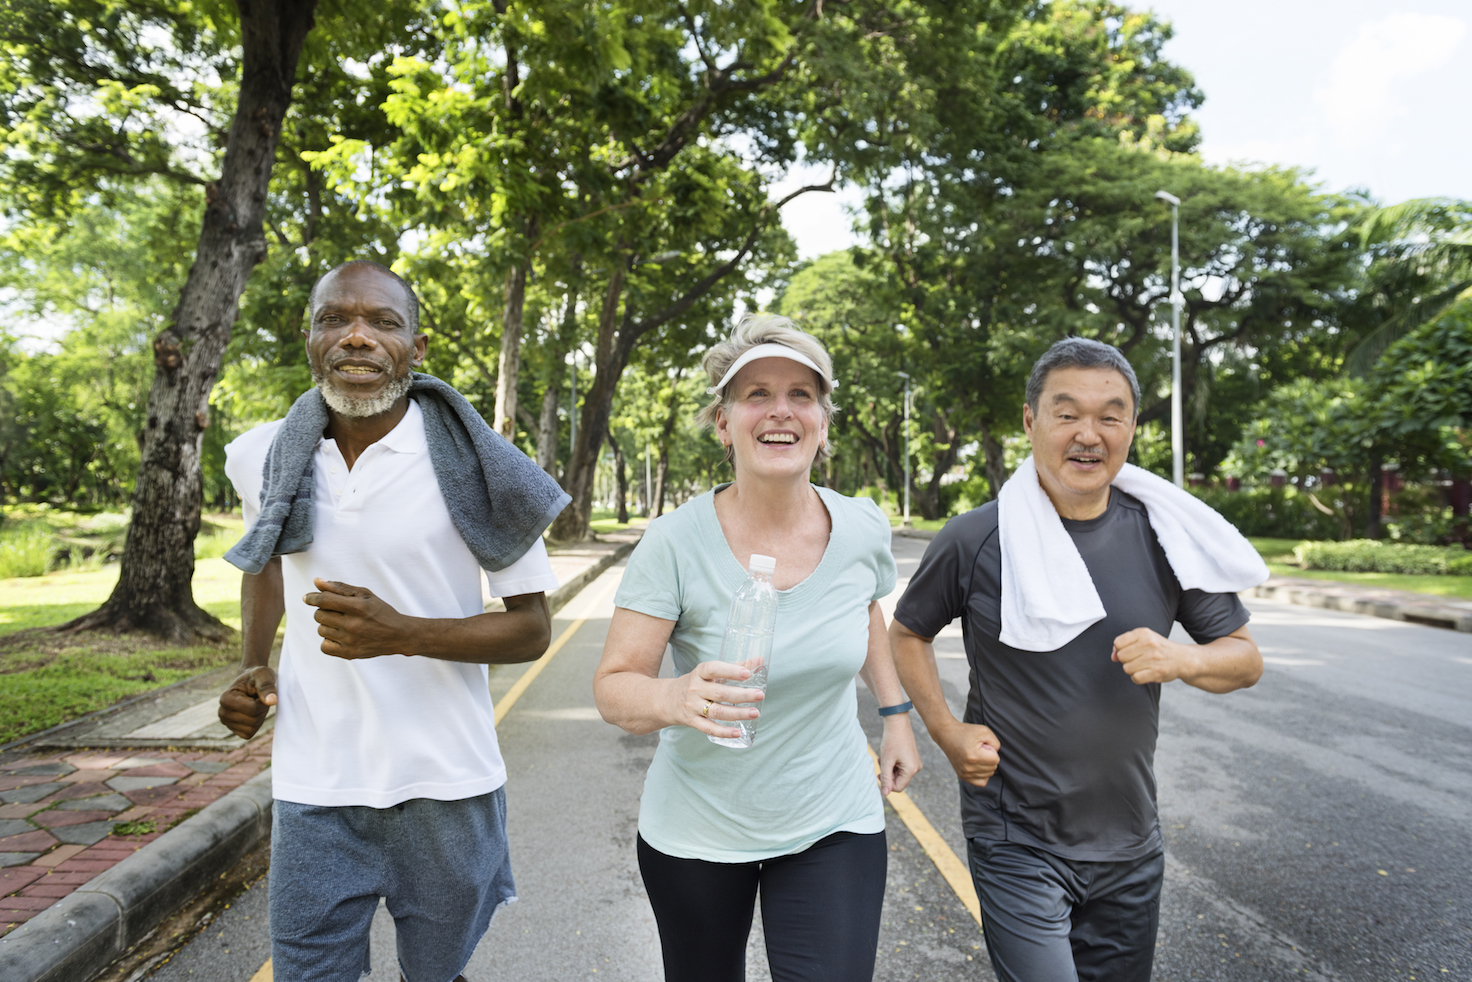 For older adults, long-term, moderate physical activity is associated with only a slight reduction in total sedentary time.